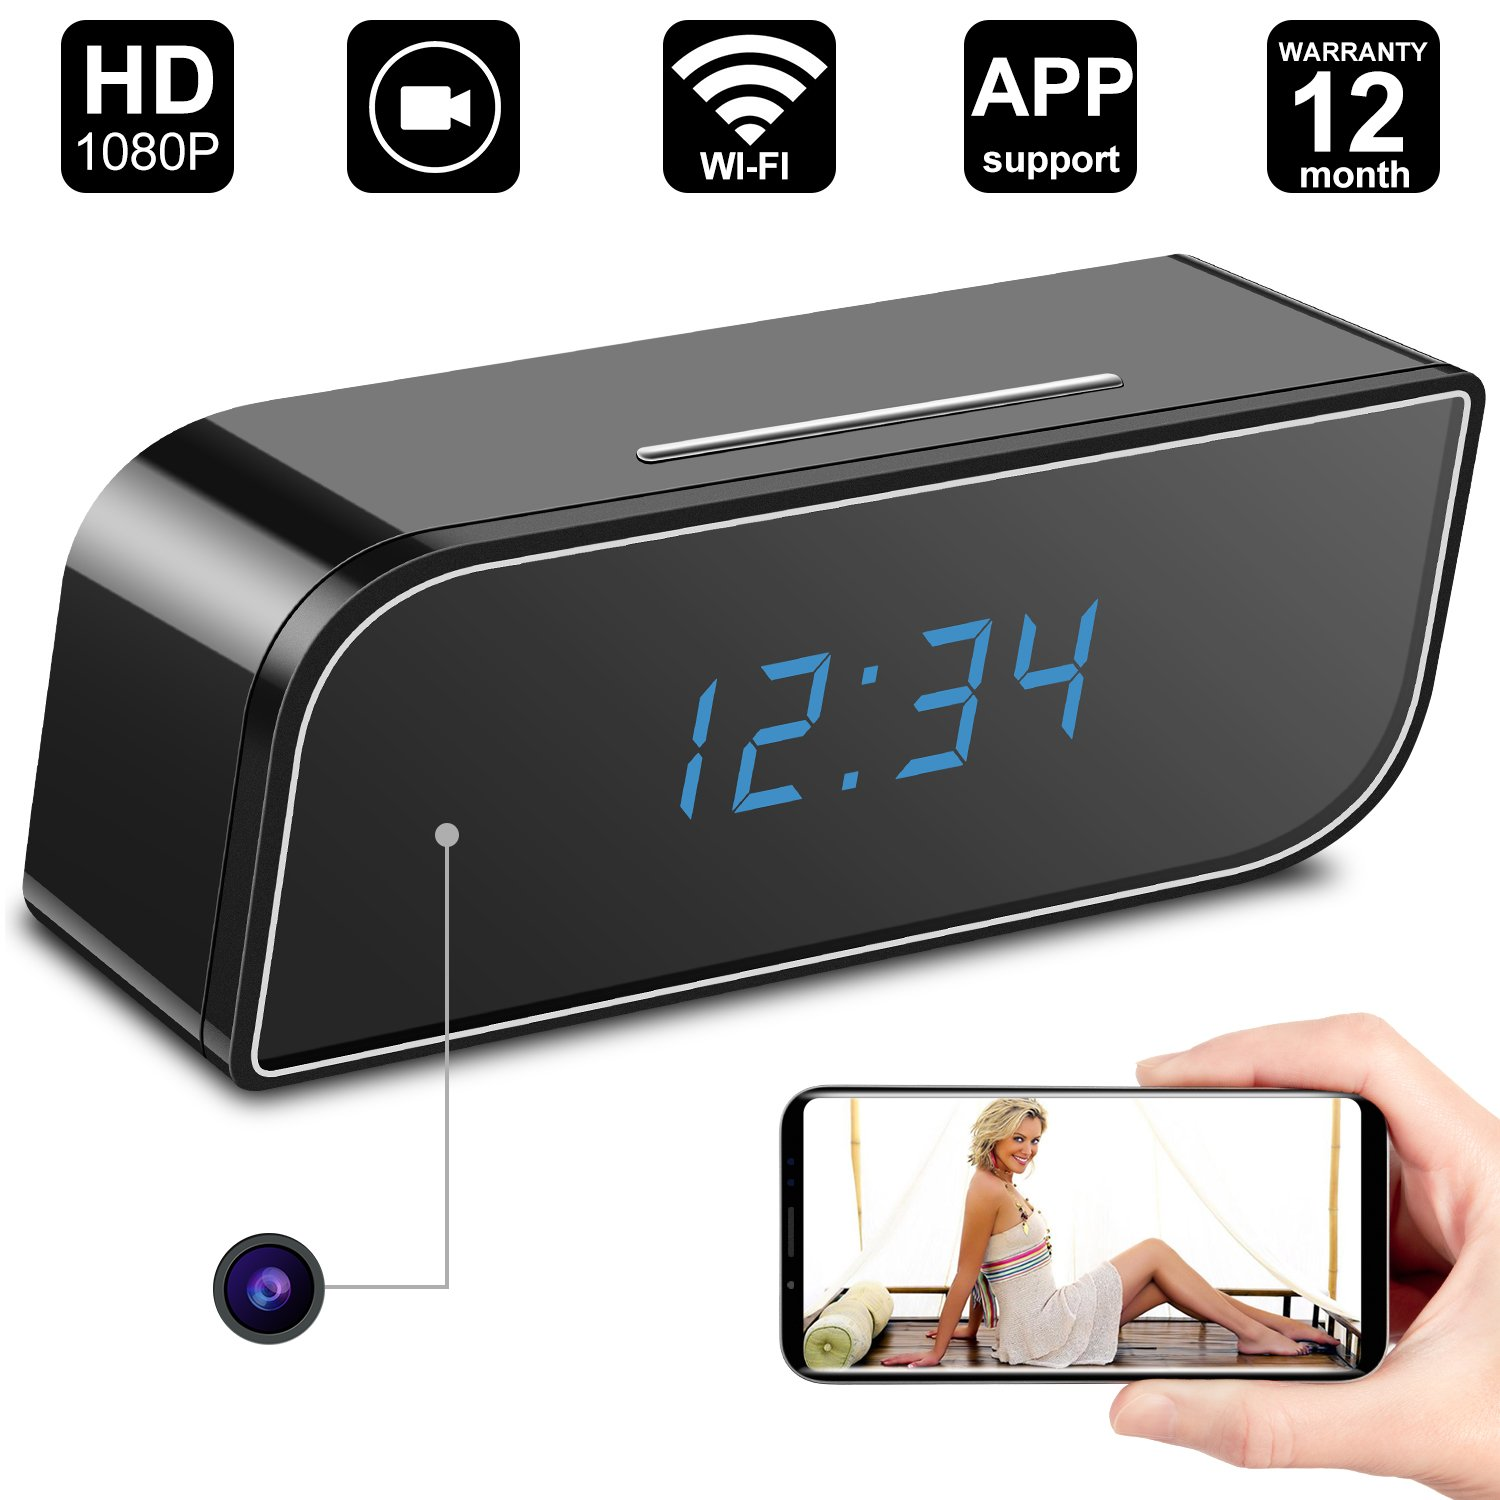 Hidden Camera Clock,Digihero Spy Camera in Clock WiFi alarm Cameras,1080P Video Loop Recorder Clock Spy Wifi Camera for Home And Office Security Monitoring Nanny Cam 150  Angle Motion Detection